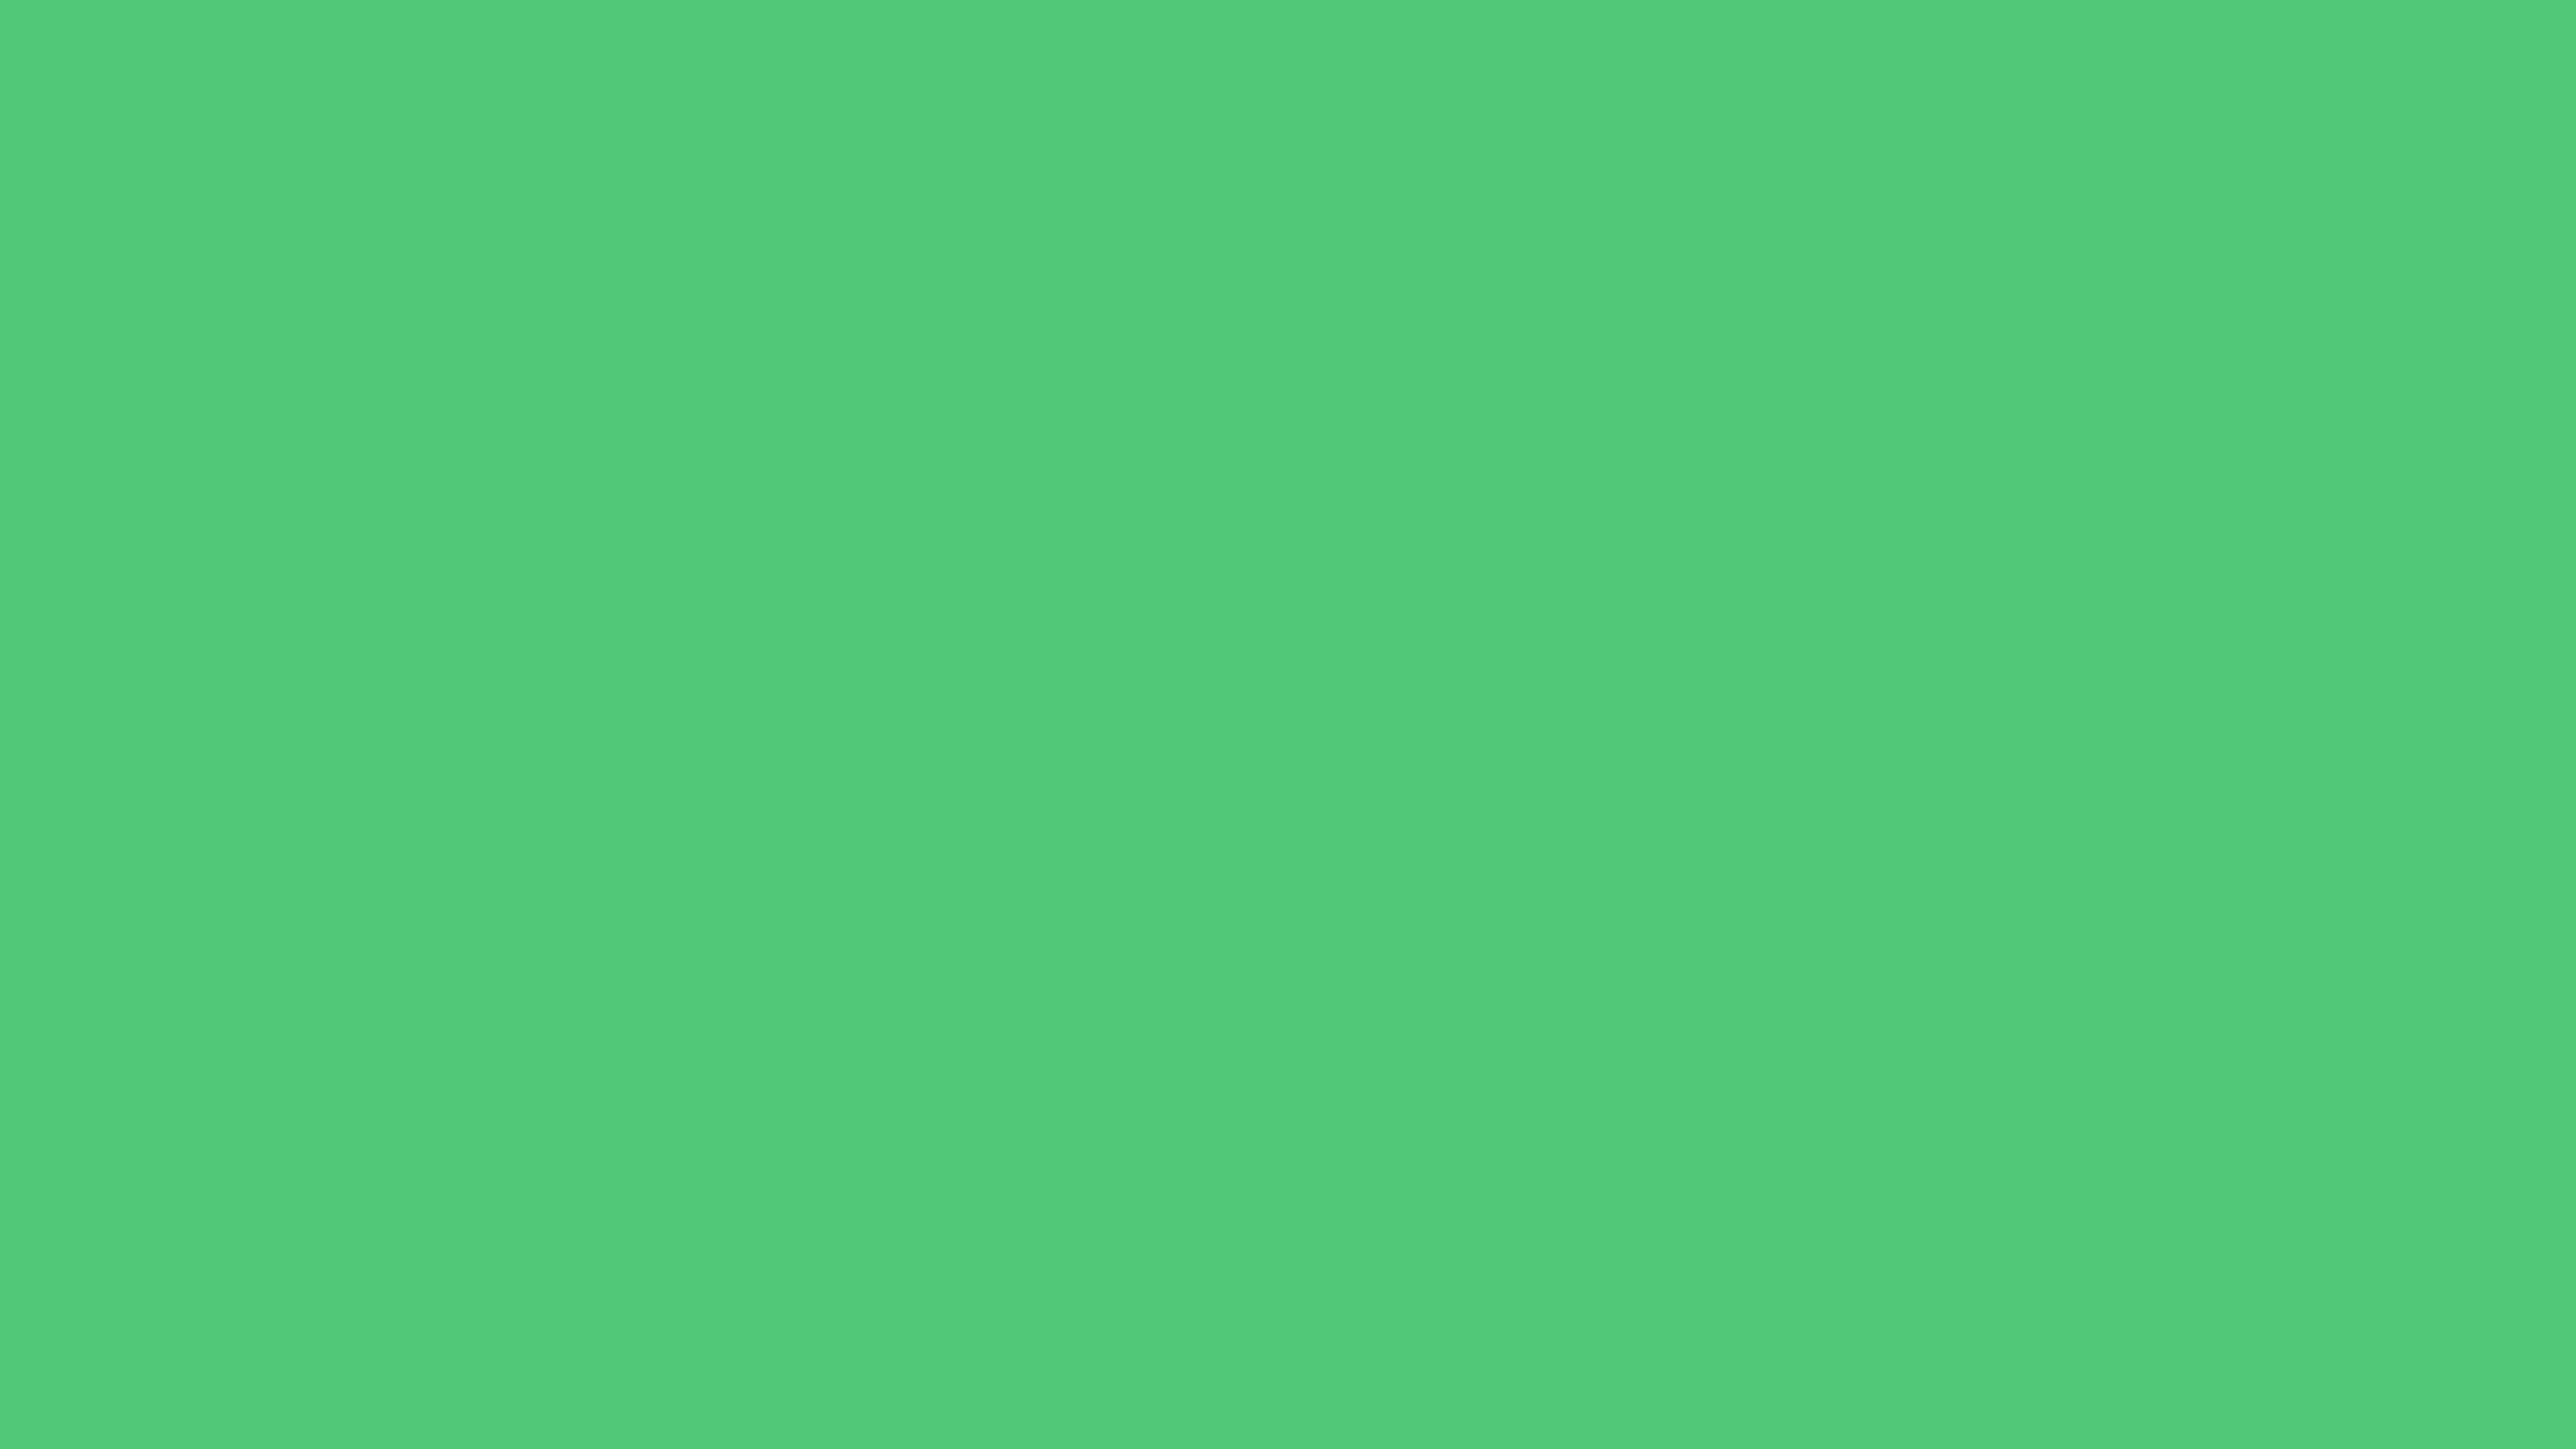 7680x4320 Emerald Solid Color Background